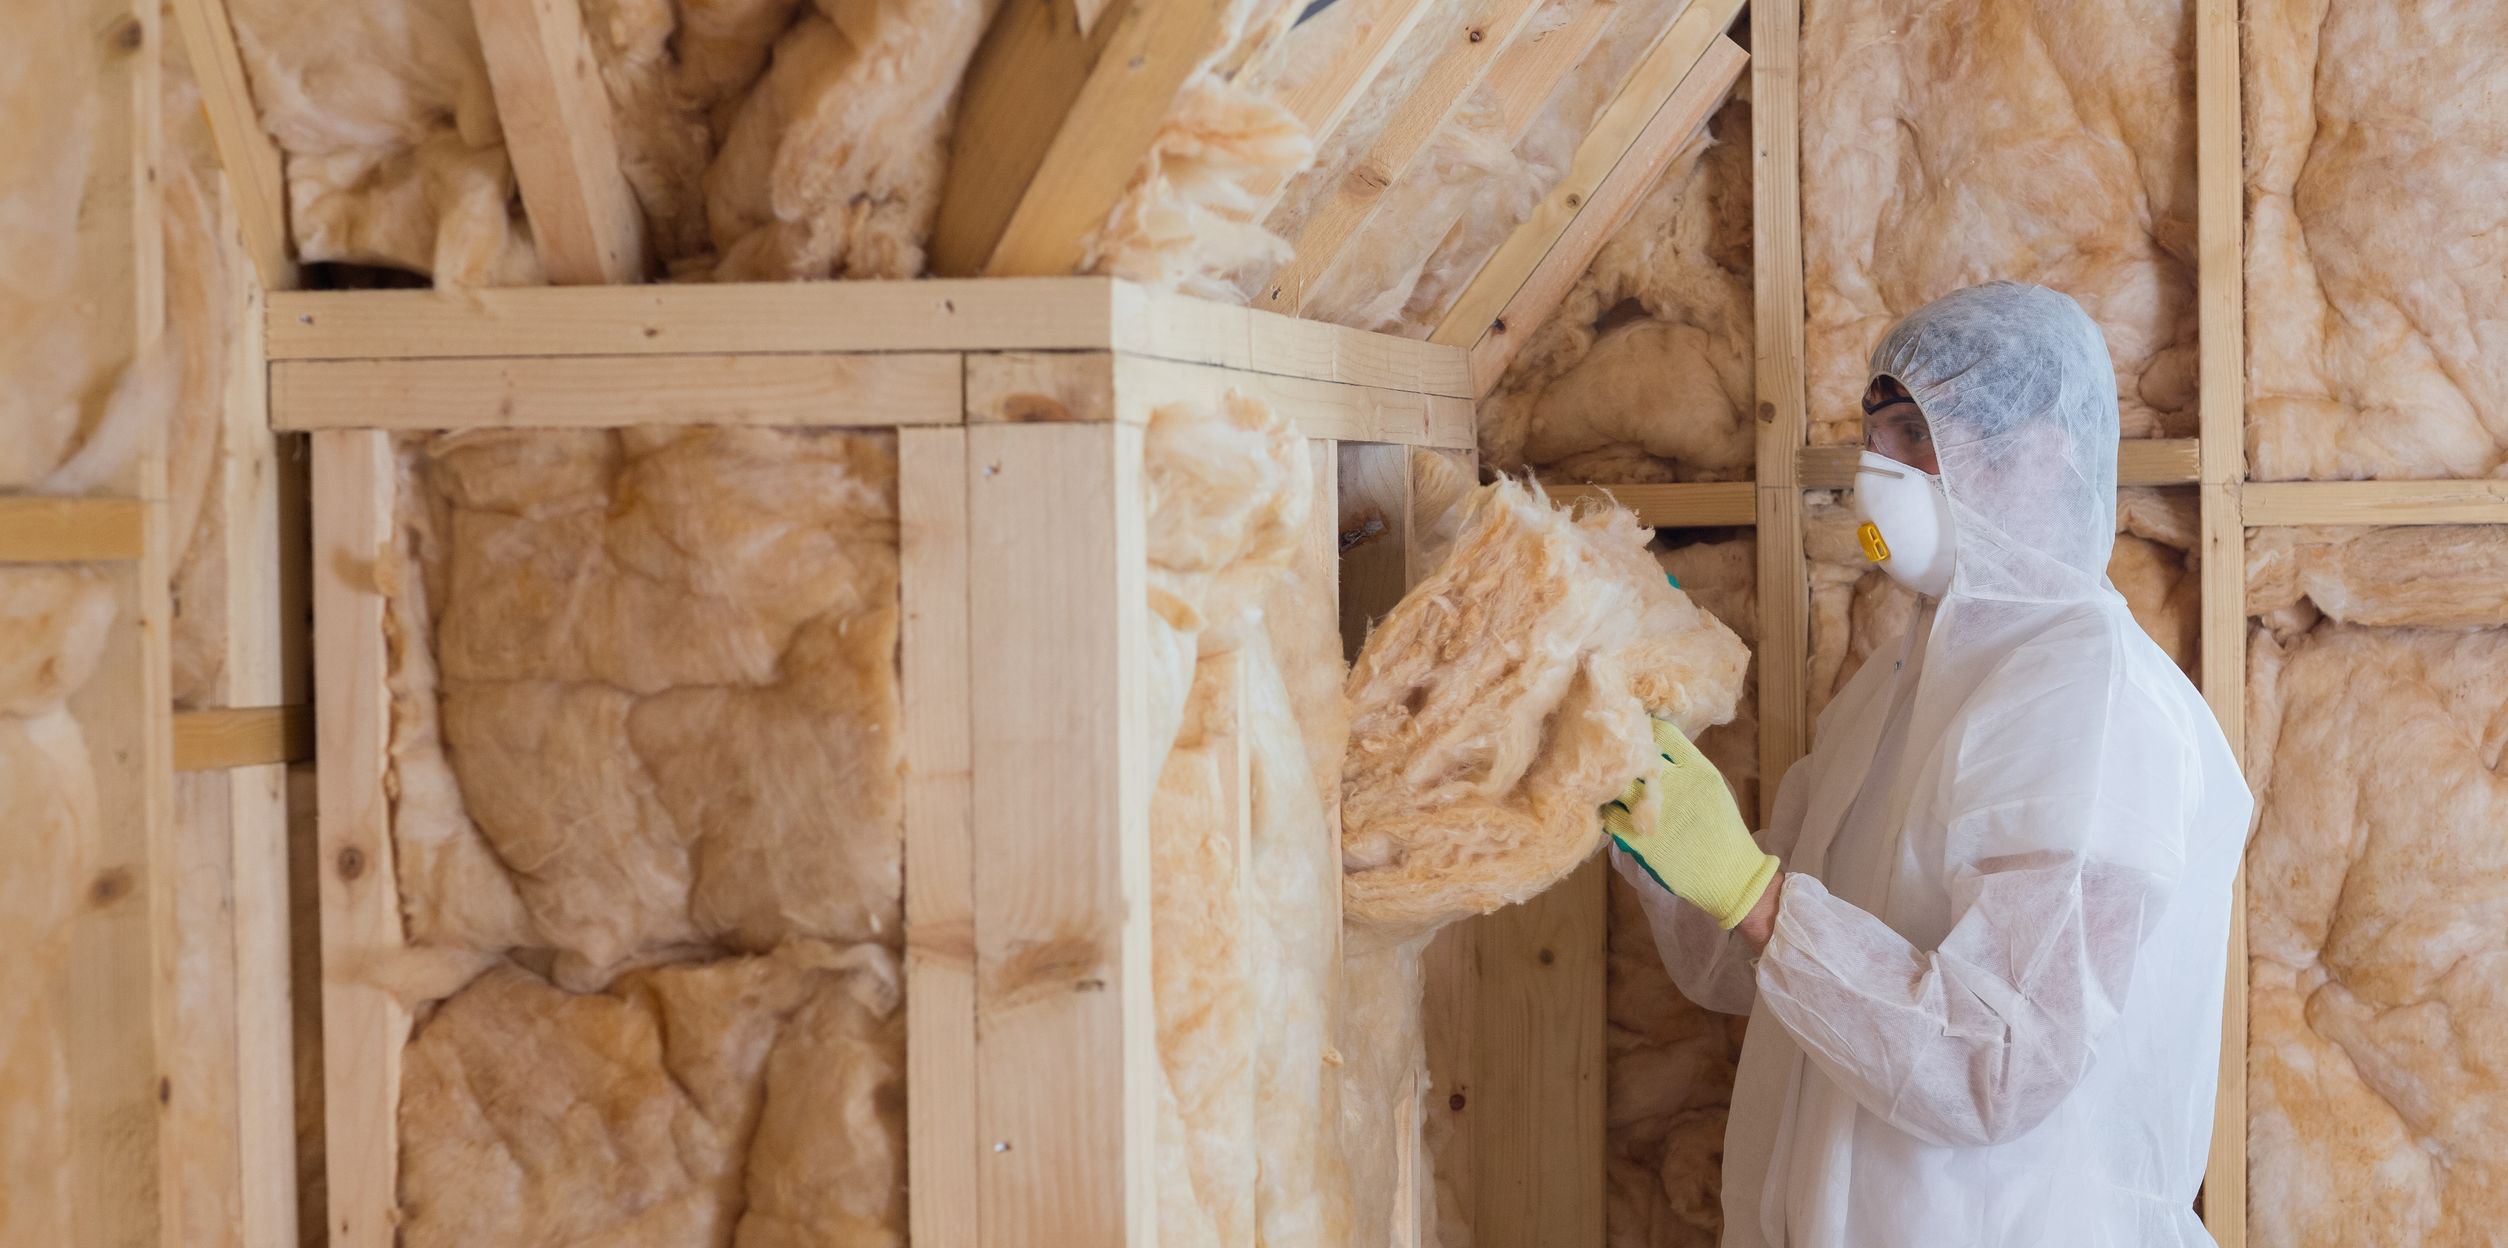 Worker in protective gear holding insulation near exposed wall